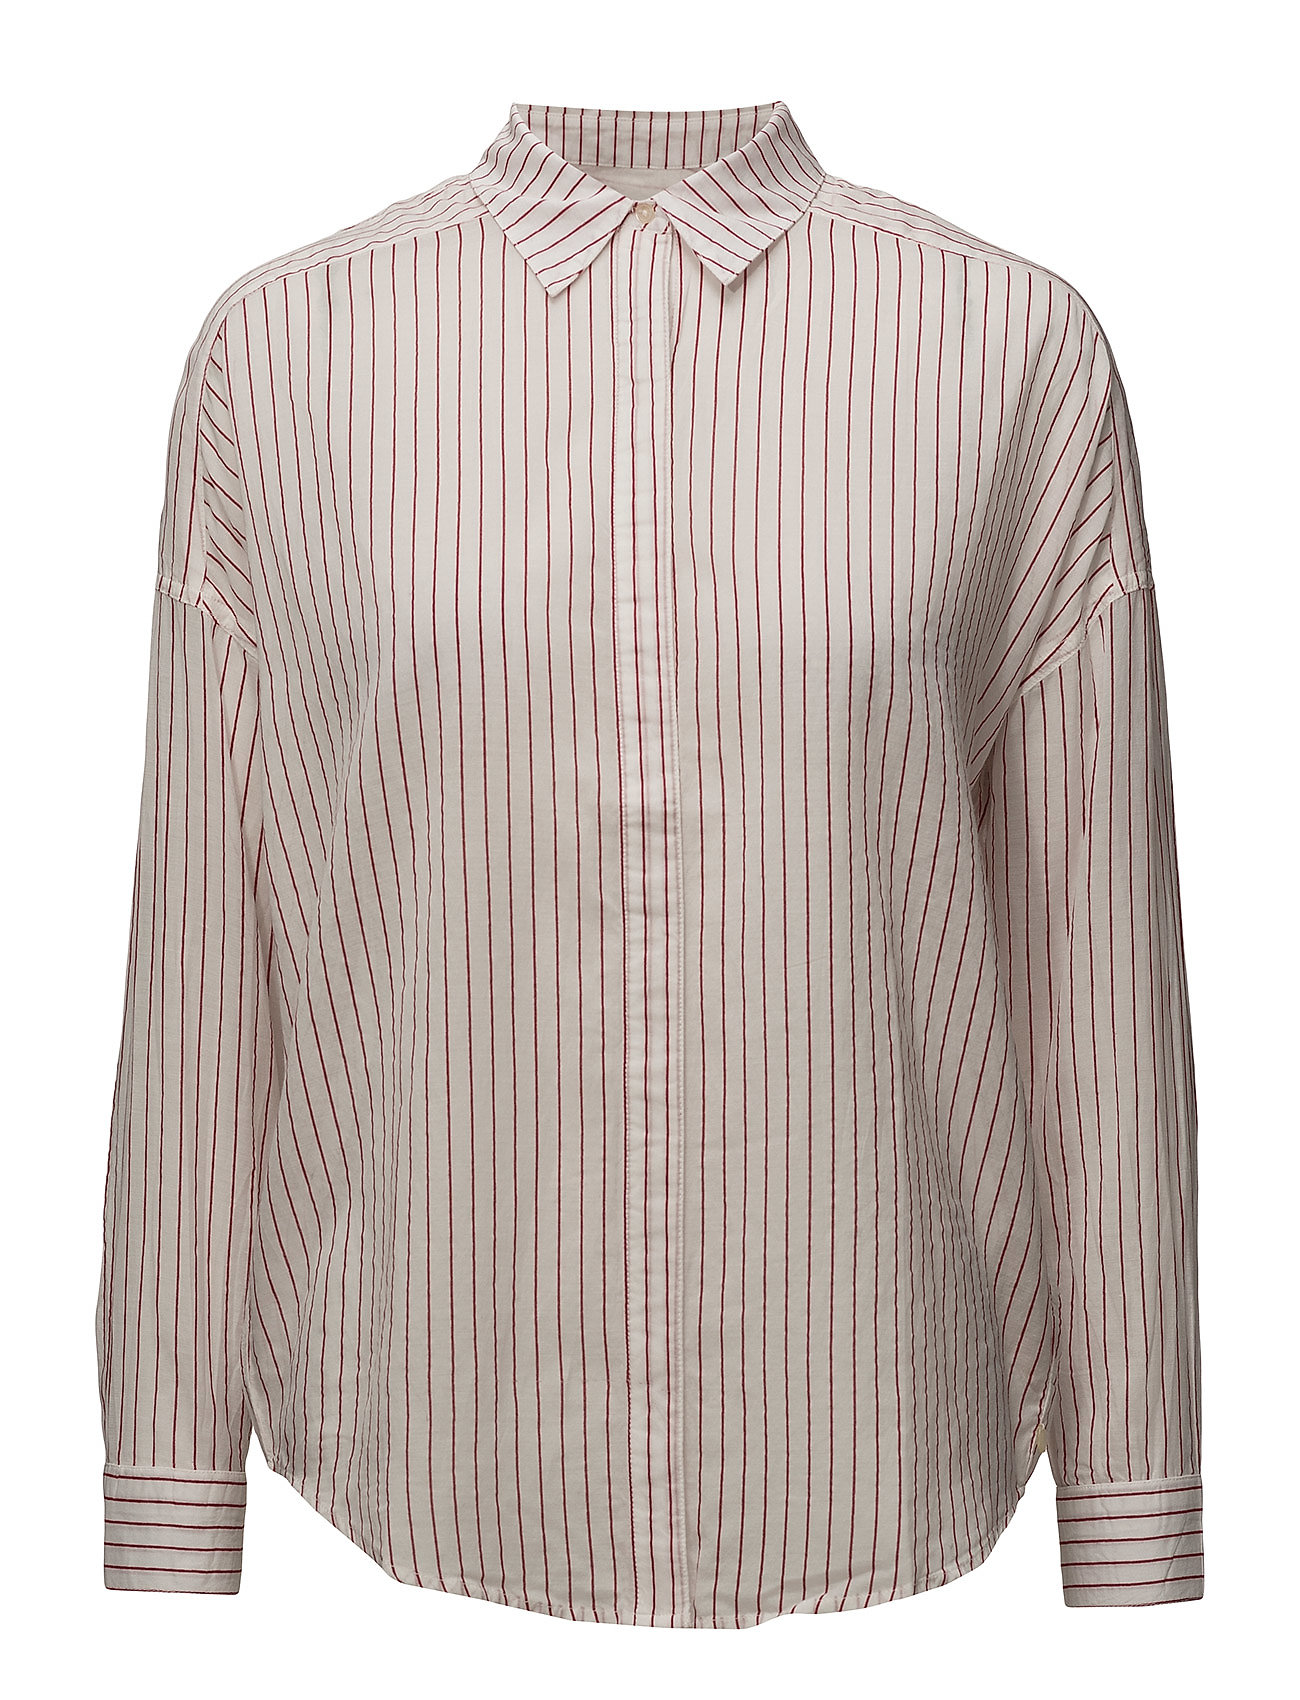 Image of Allover Printed Shirt With Dropped Shoulder (2865816297)